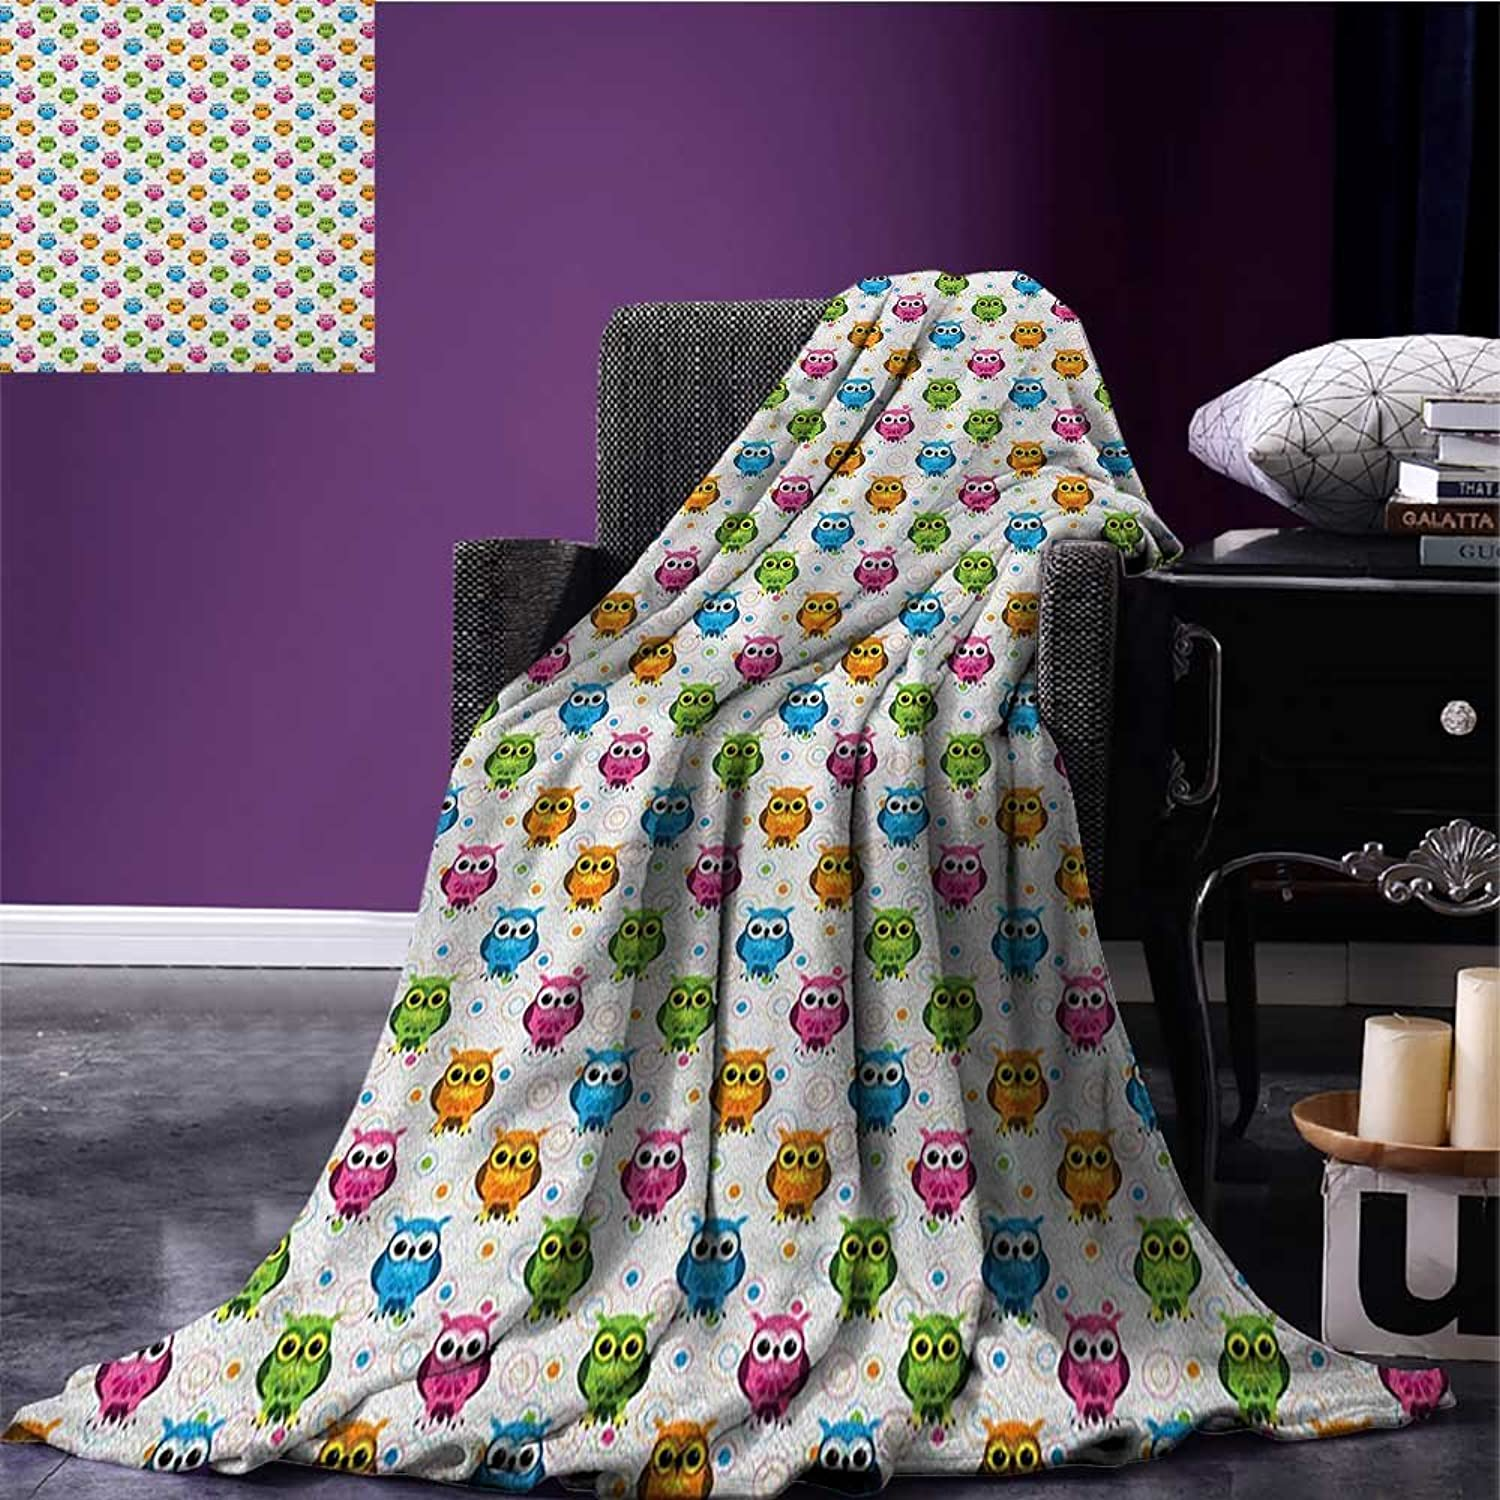 Owls Park Blanket Lively colord Fun Kids Cartoon Happy Mascots colorful Pattern with Circles and Dots Soft Blanket Multicolor Size 59 x35.5